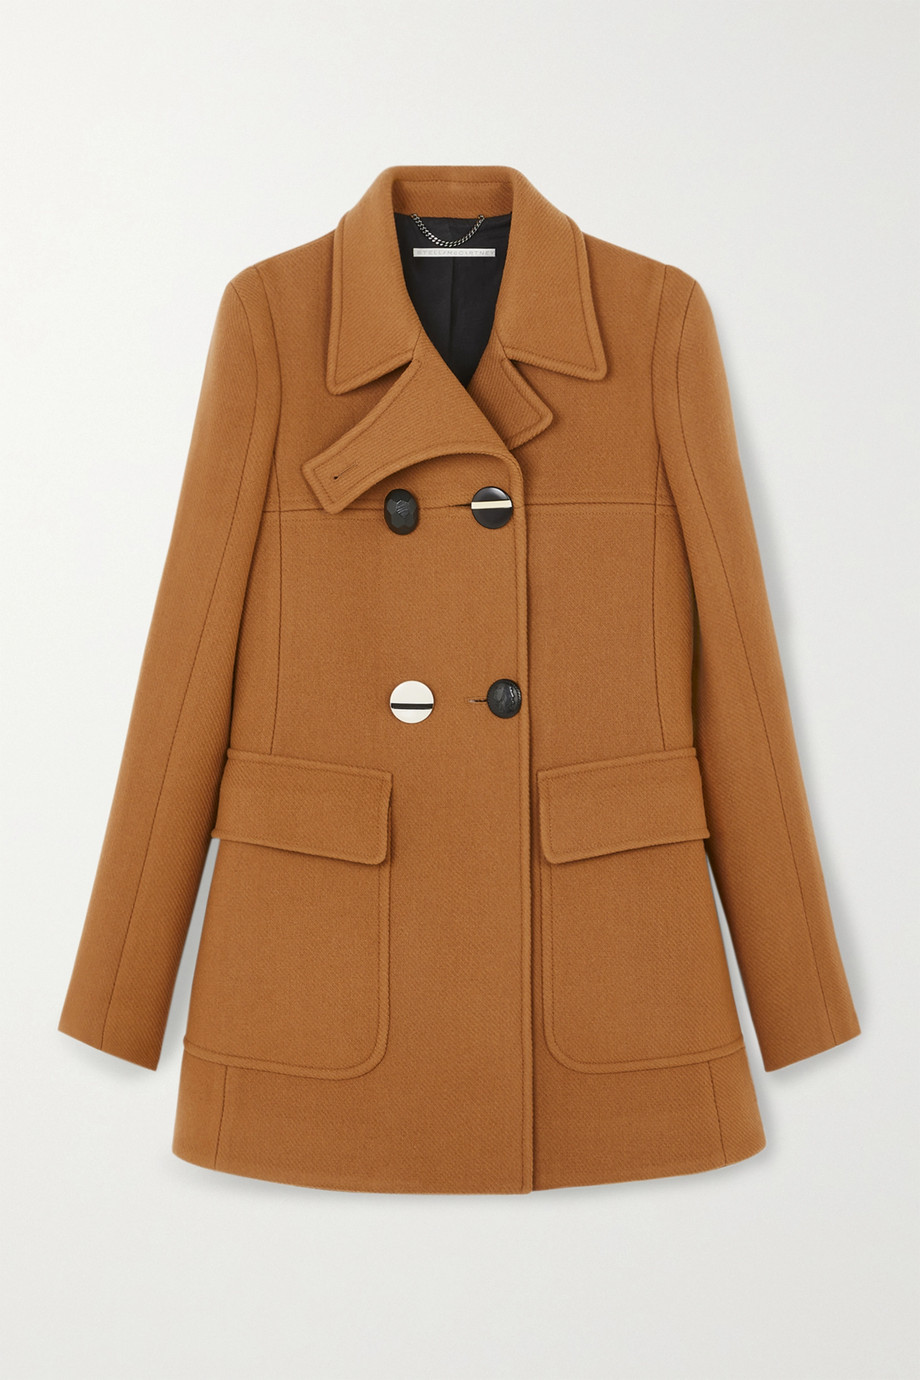 Stella McCartney Nyla double-breasted wool-felt coat